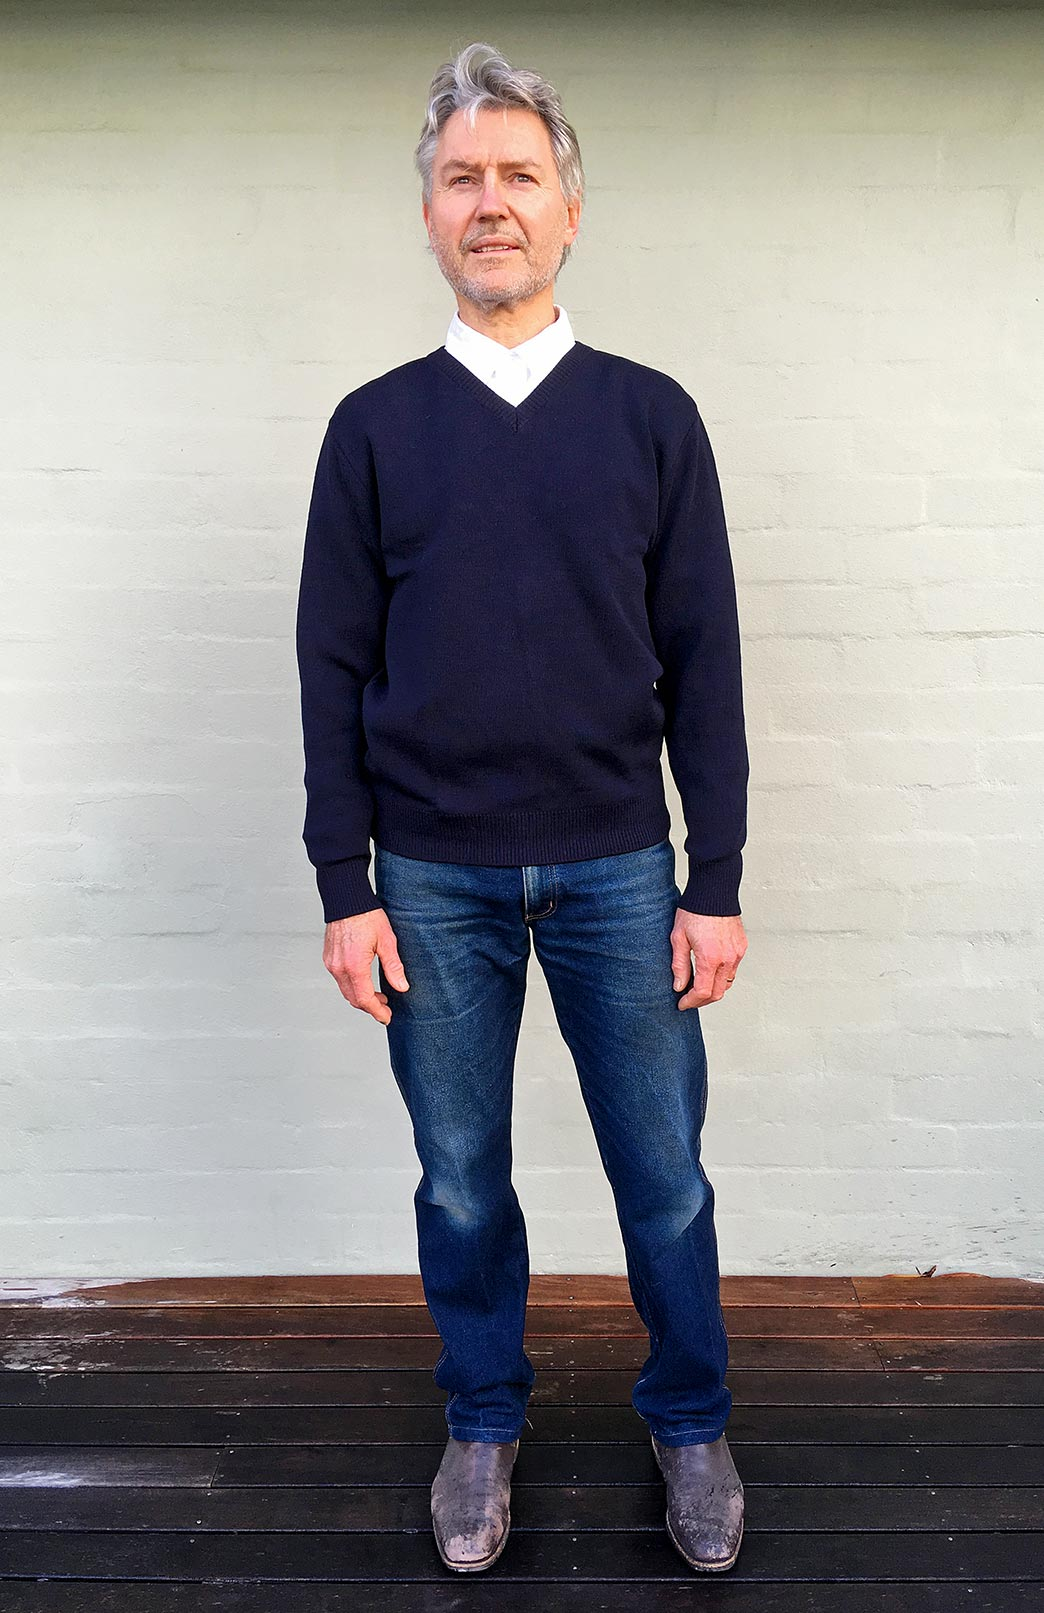 Men's Knitted Wool V-Neck Jumper - Men's Superfine Knitted Merino Wool Classic V-Neck Pullover Jumper - Smitten Merino Tasmania Australia